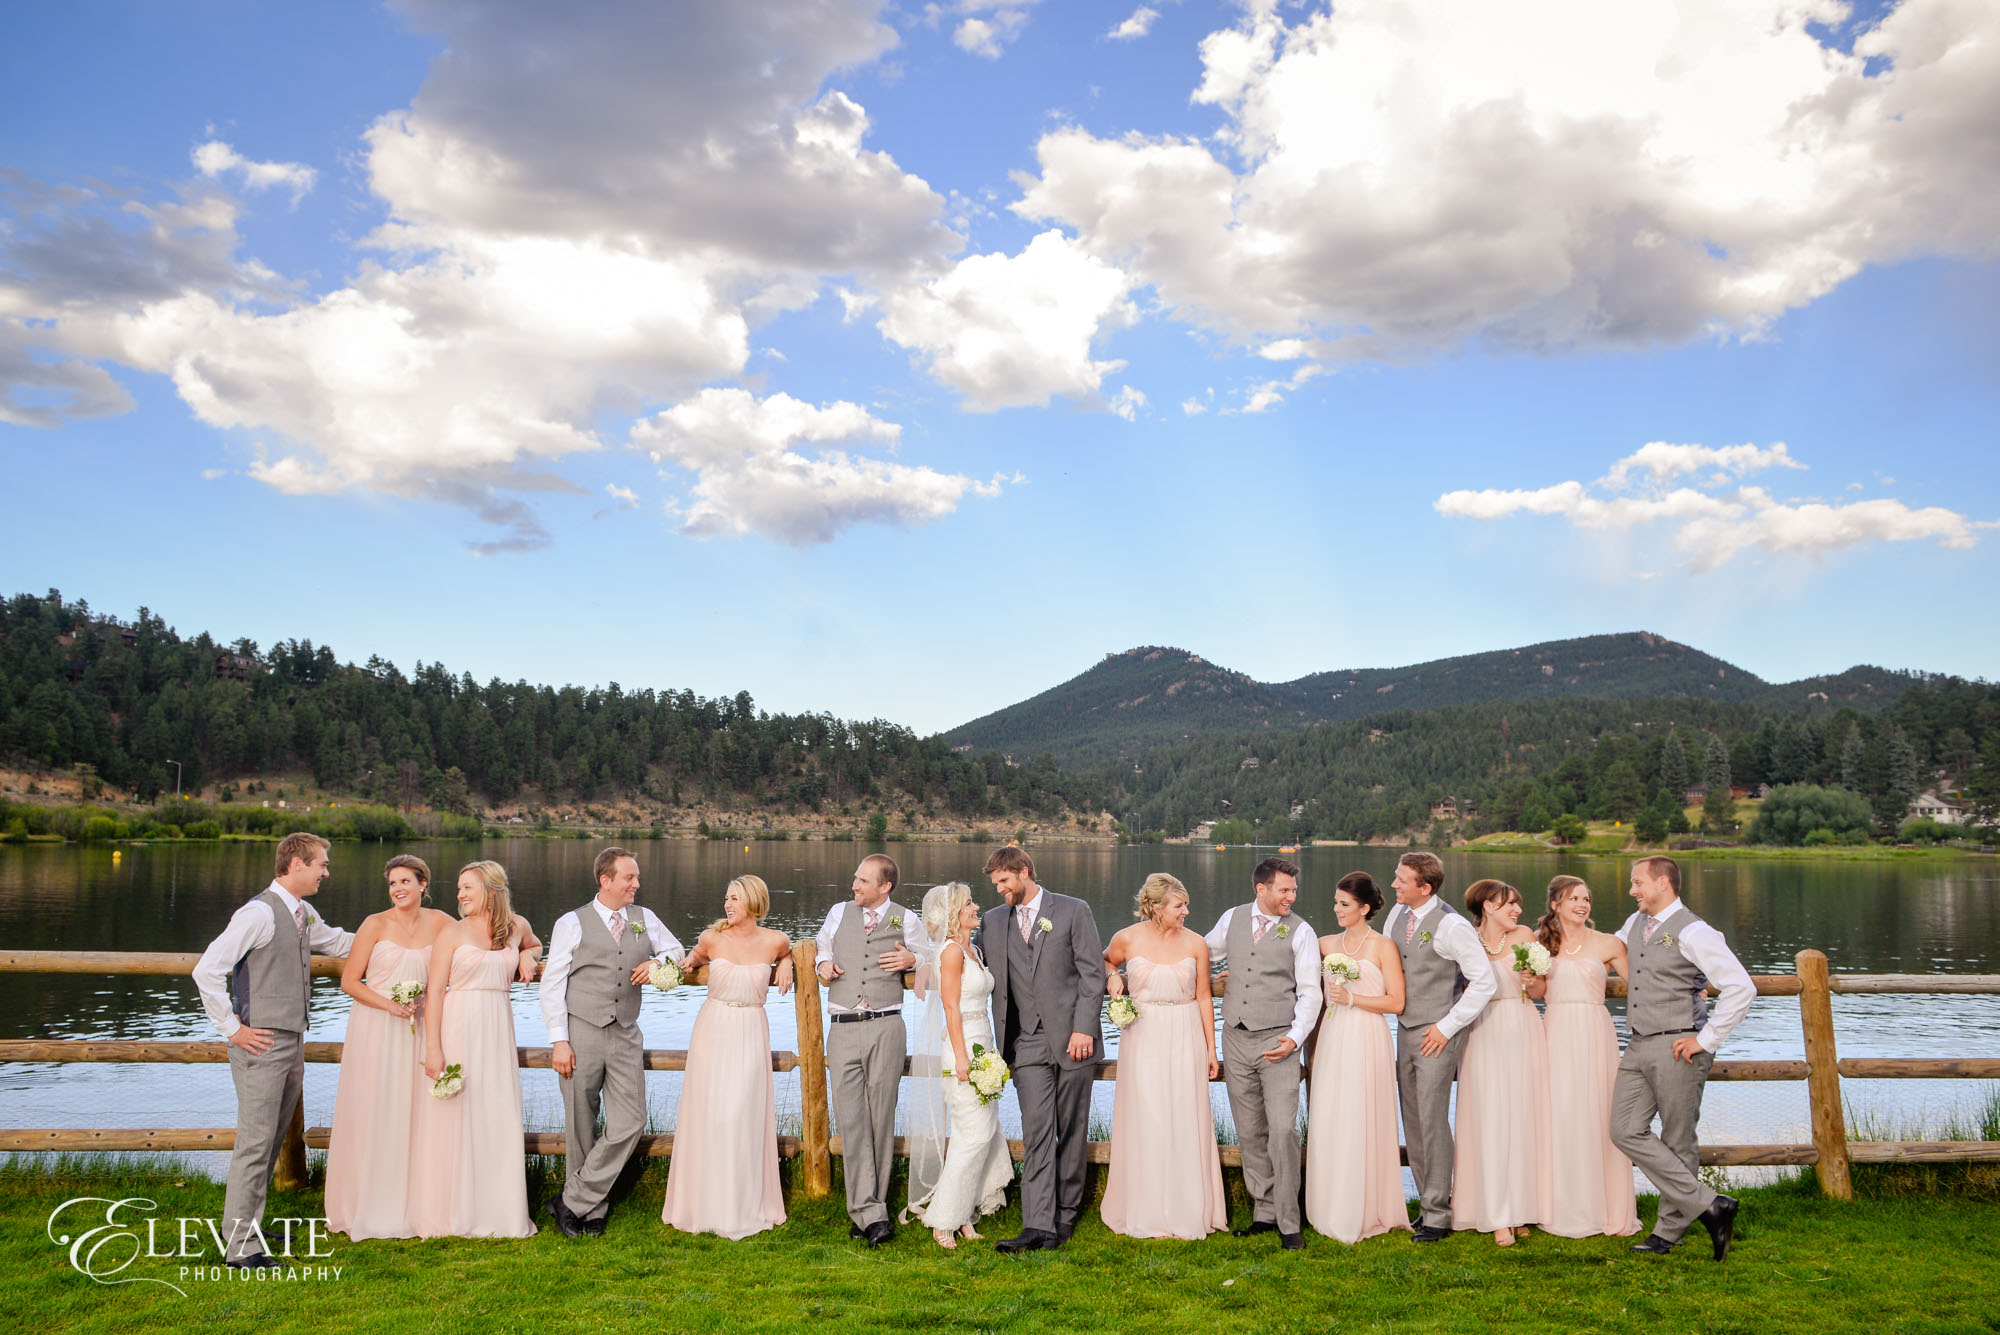 wedding party pink dresses